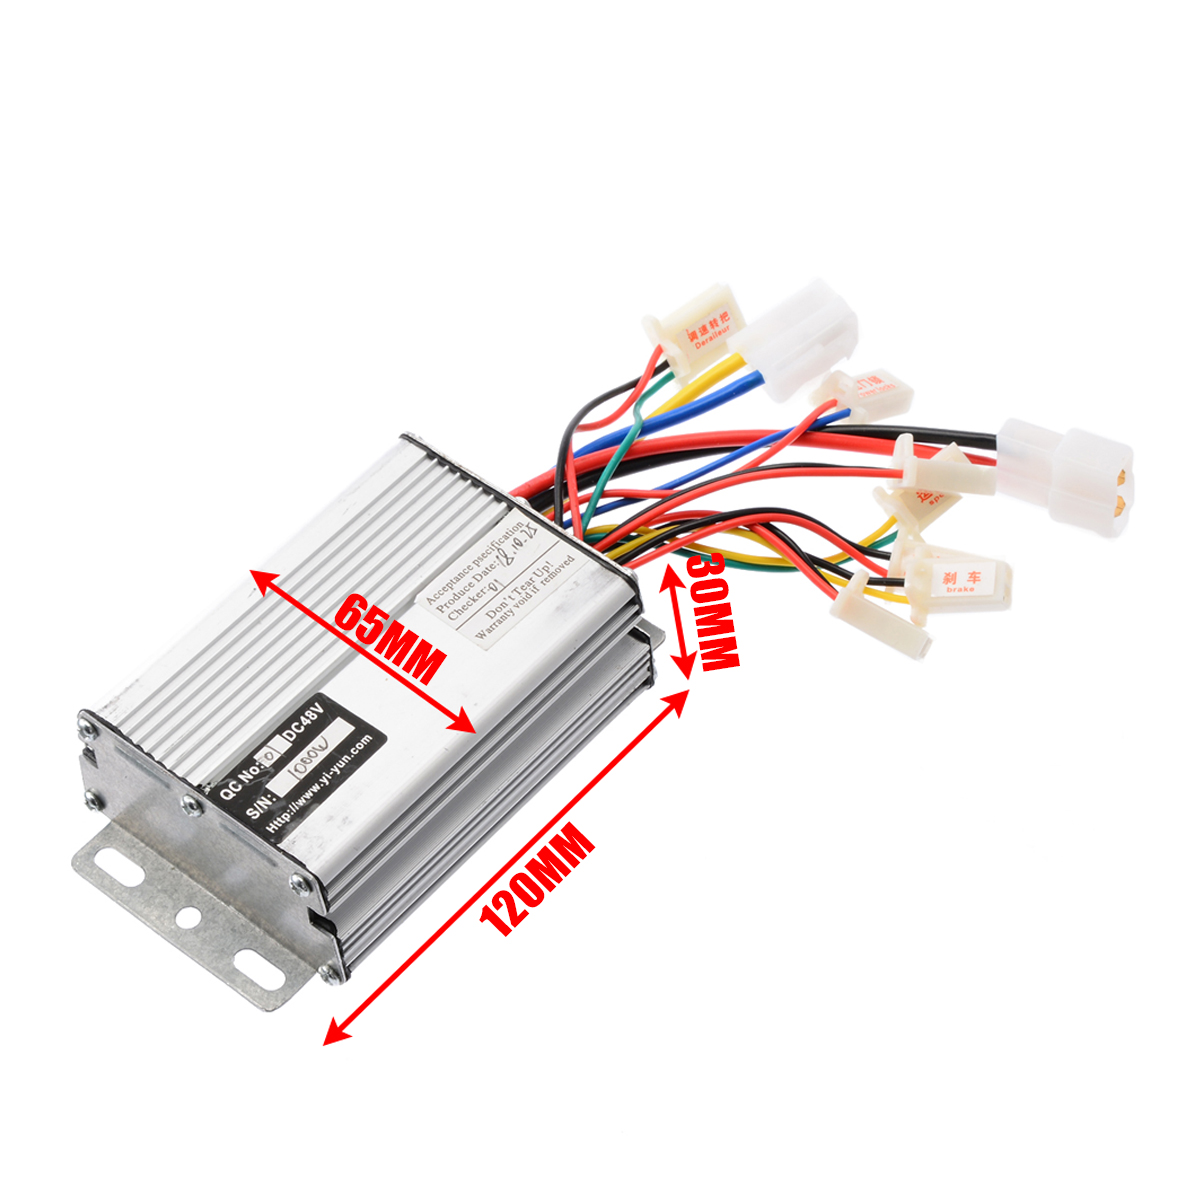 48V 1000W Electric Bicycle Brush Speed Motor Controller For E-bike & Scooter Drives & Motor Controls